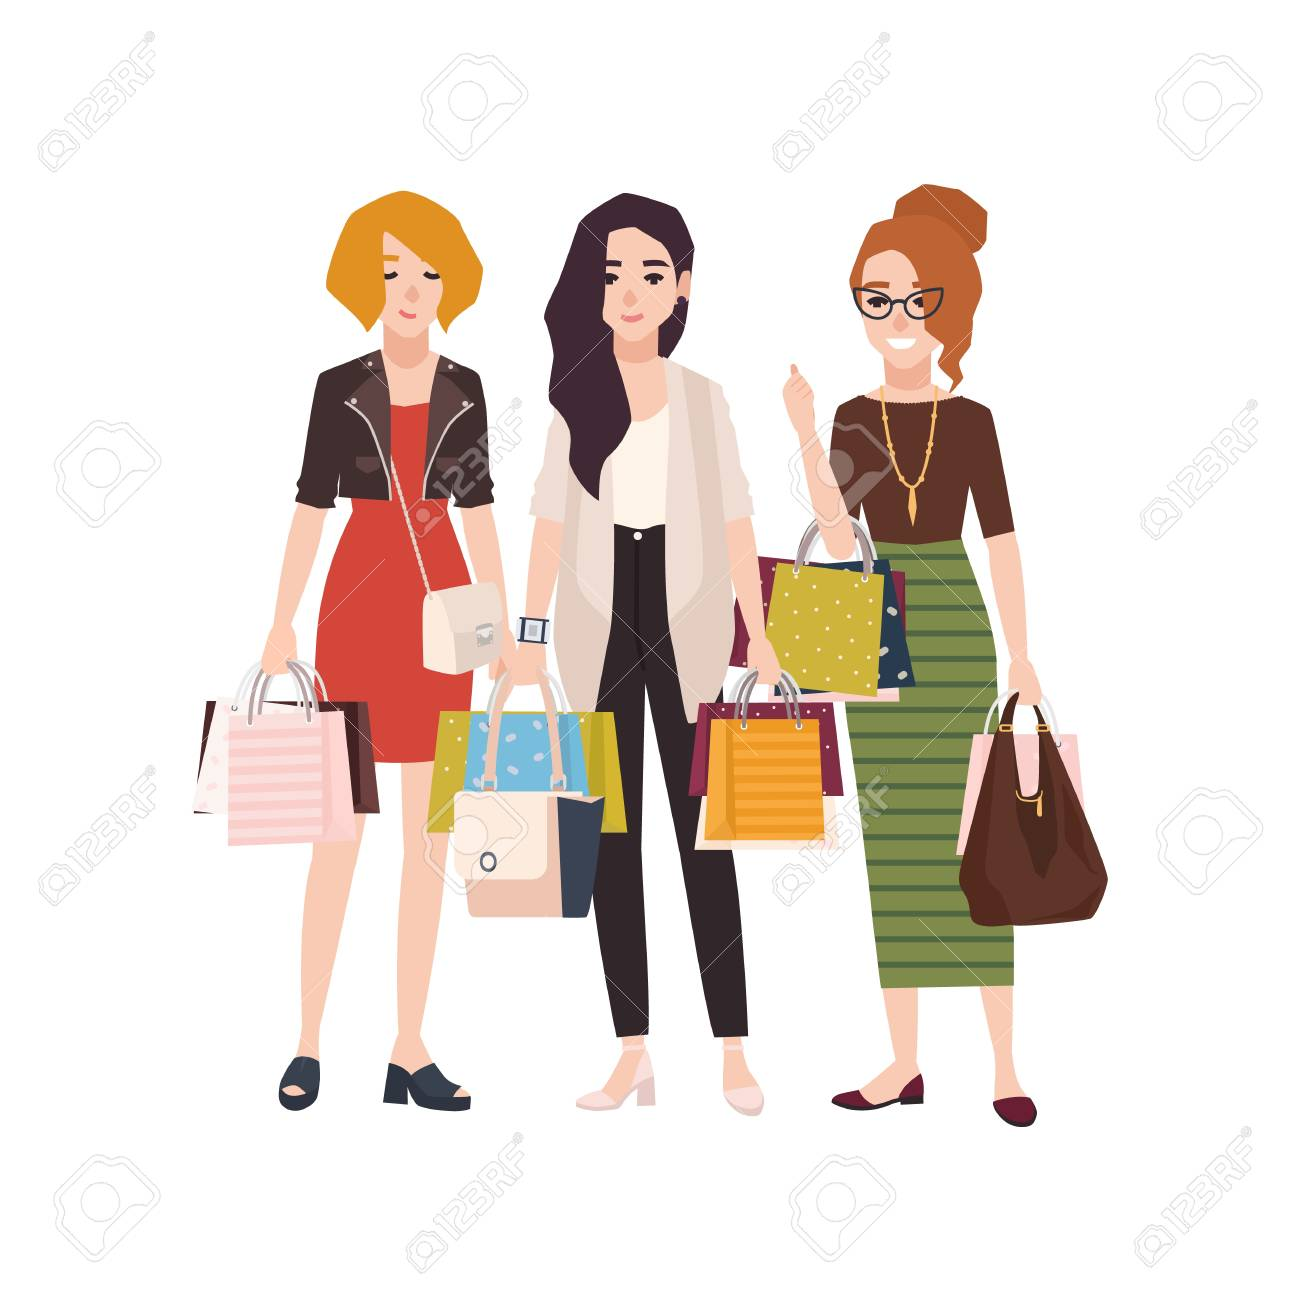 da0ffb5350 Colorful vector illustration. Group of young happy woman holding shopping  bags. Girls or female friends with their purchases